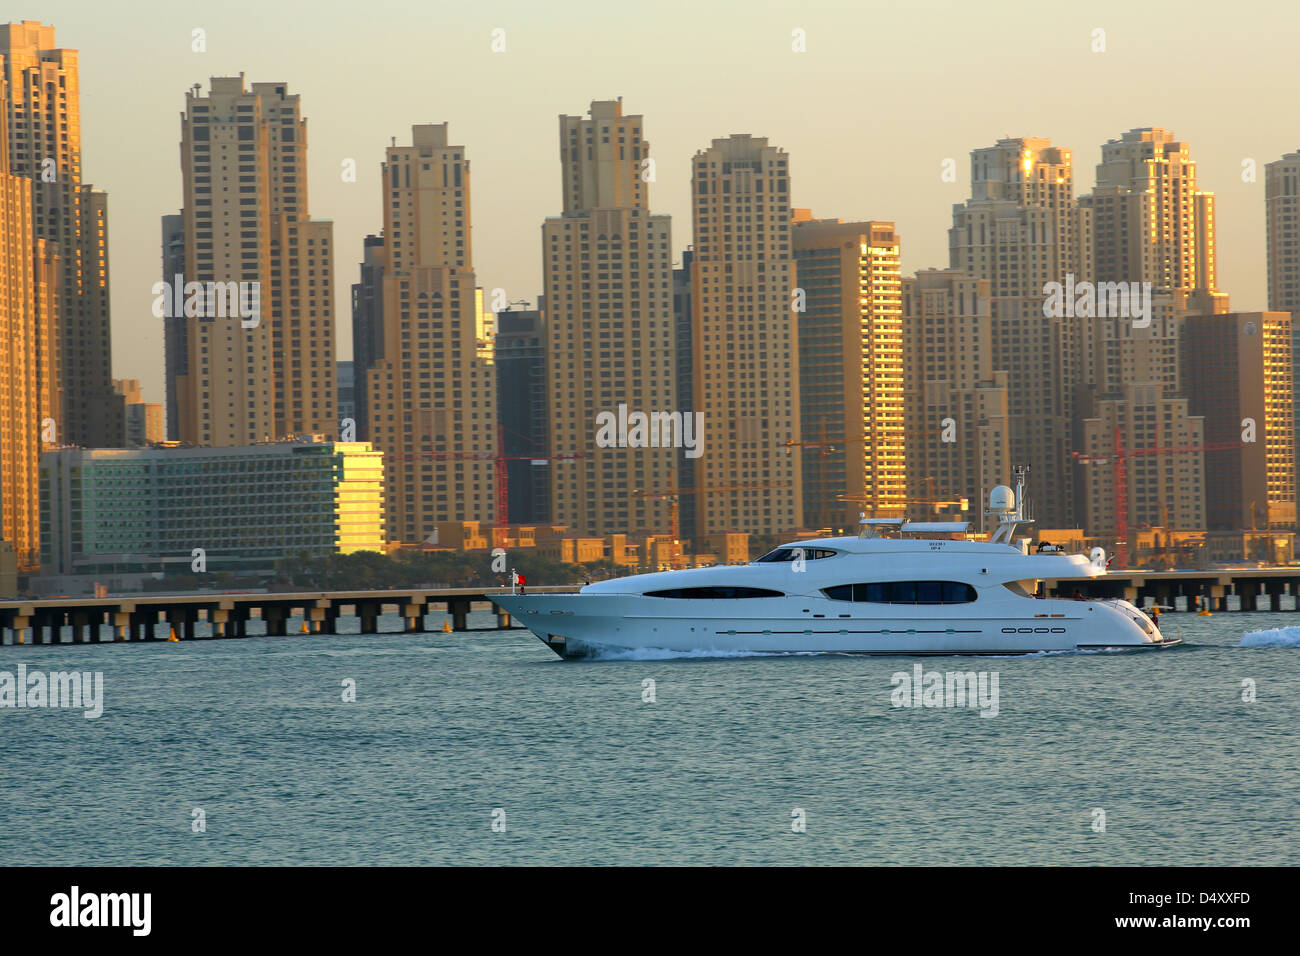 Luxury yacht at Dubai marina, United Arab Emirates - Stock Image